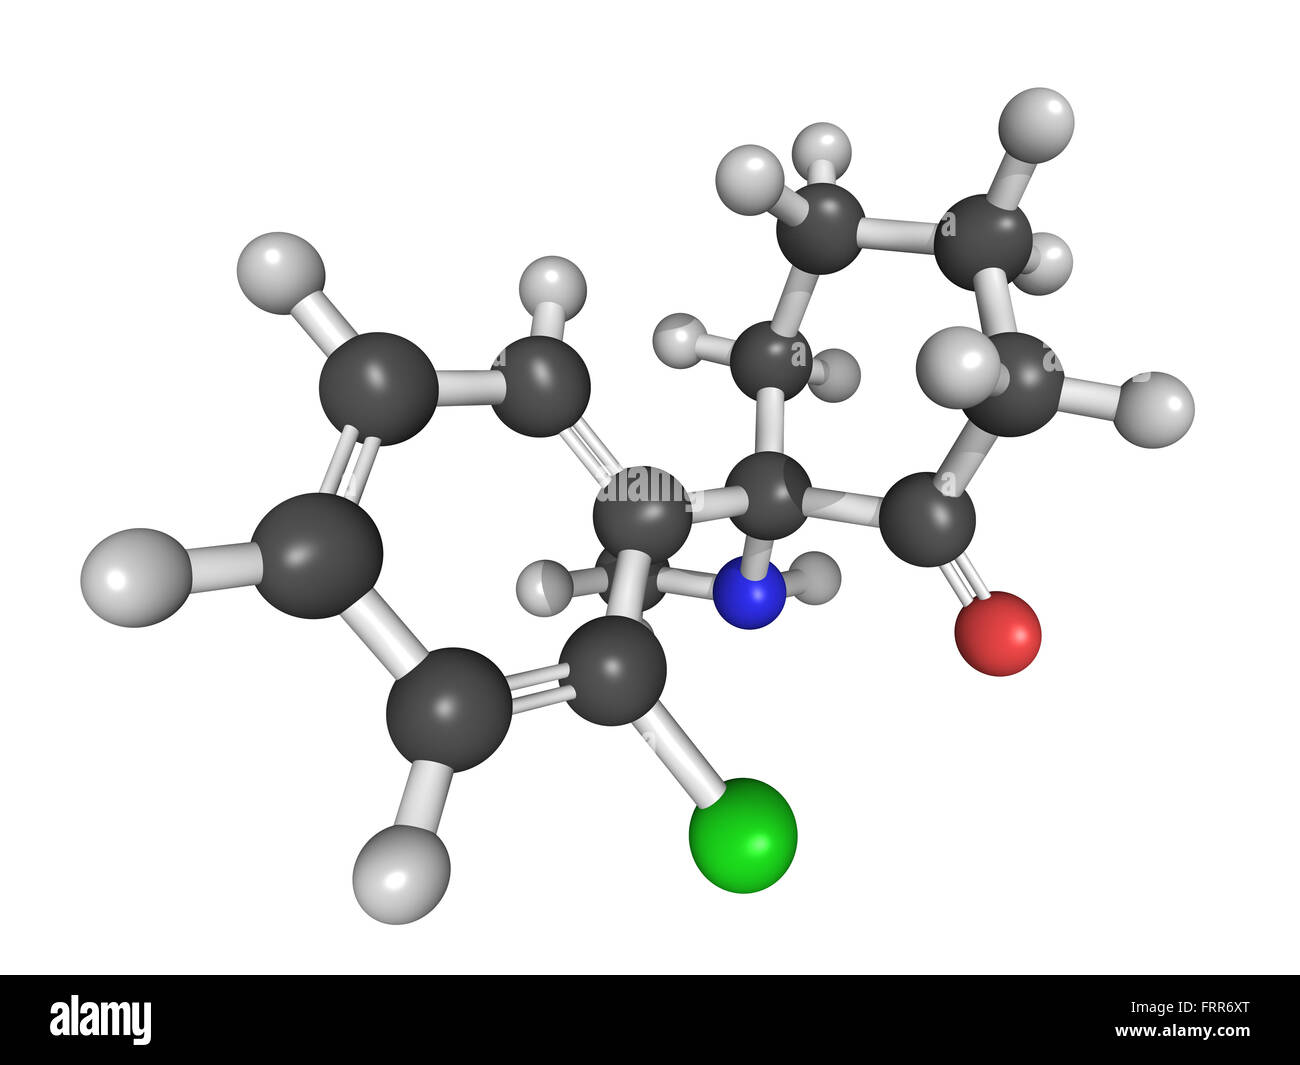 Chemical structure of ketamine, an anaesthetic drug with rapid antidepressant properties - Stock Image